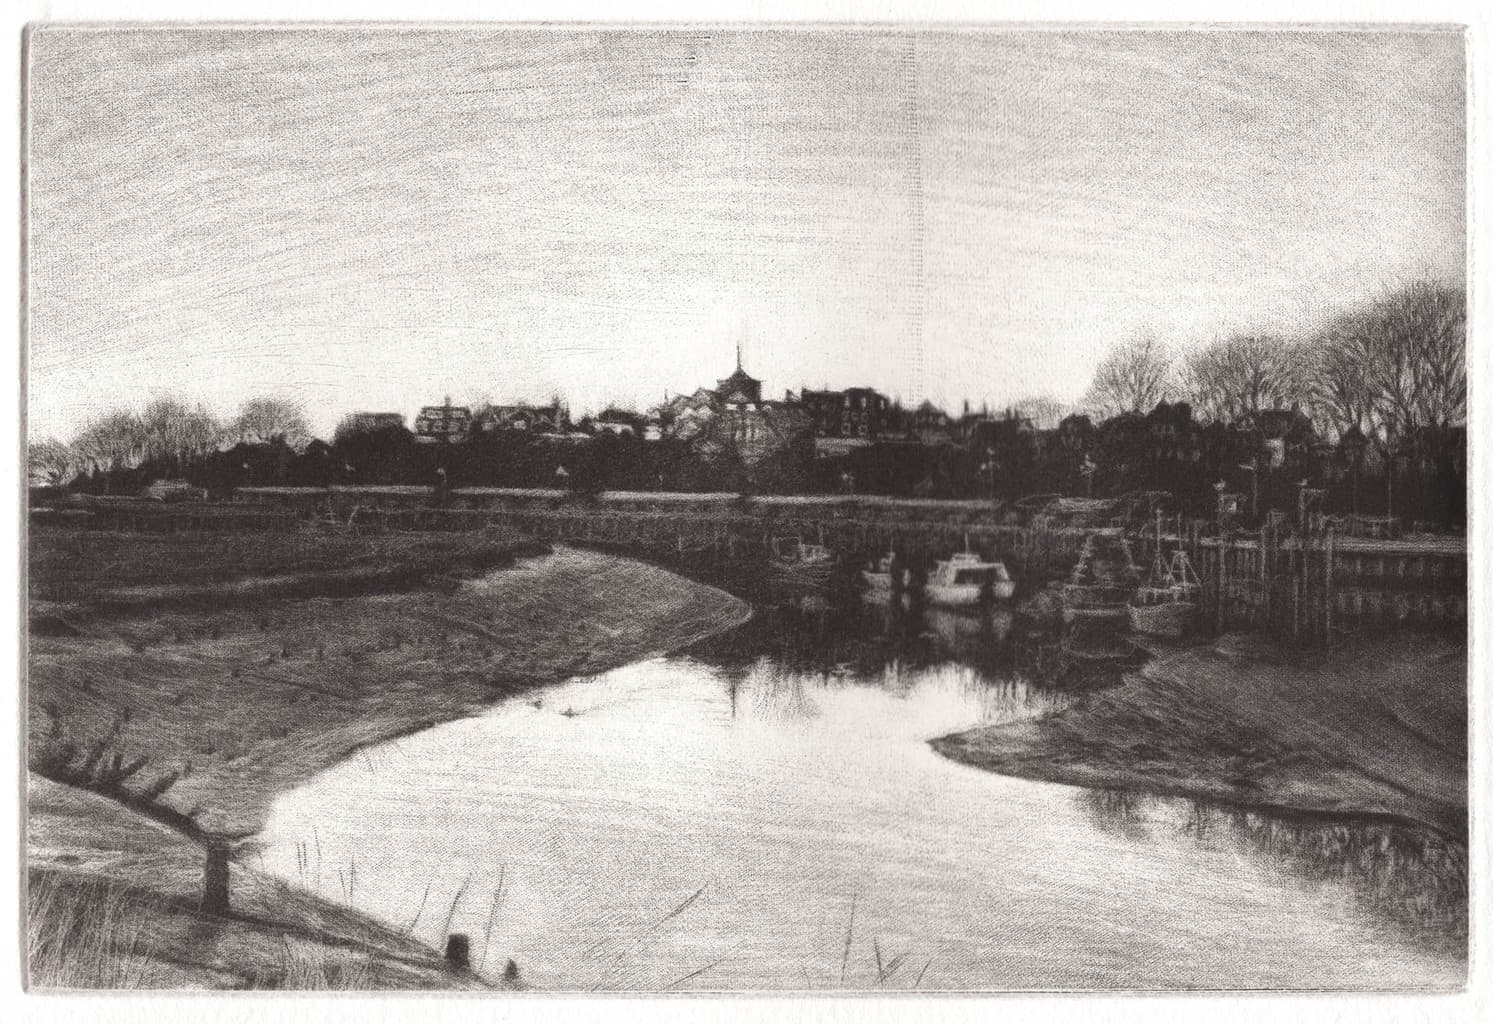 """""""Rye From The Bridge"""" - Black and white picture of Rye, East Sussex, England, across the river Rother. Original print mezzotint by painter-printmaker Marina Kim"""